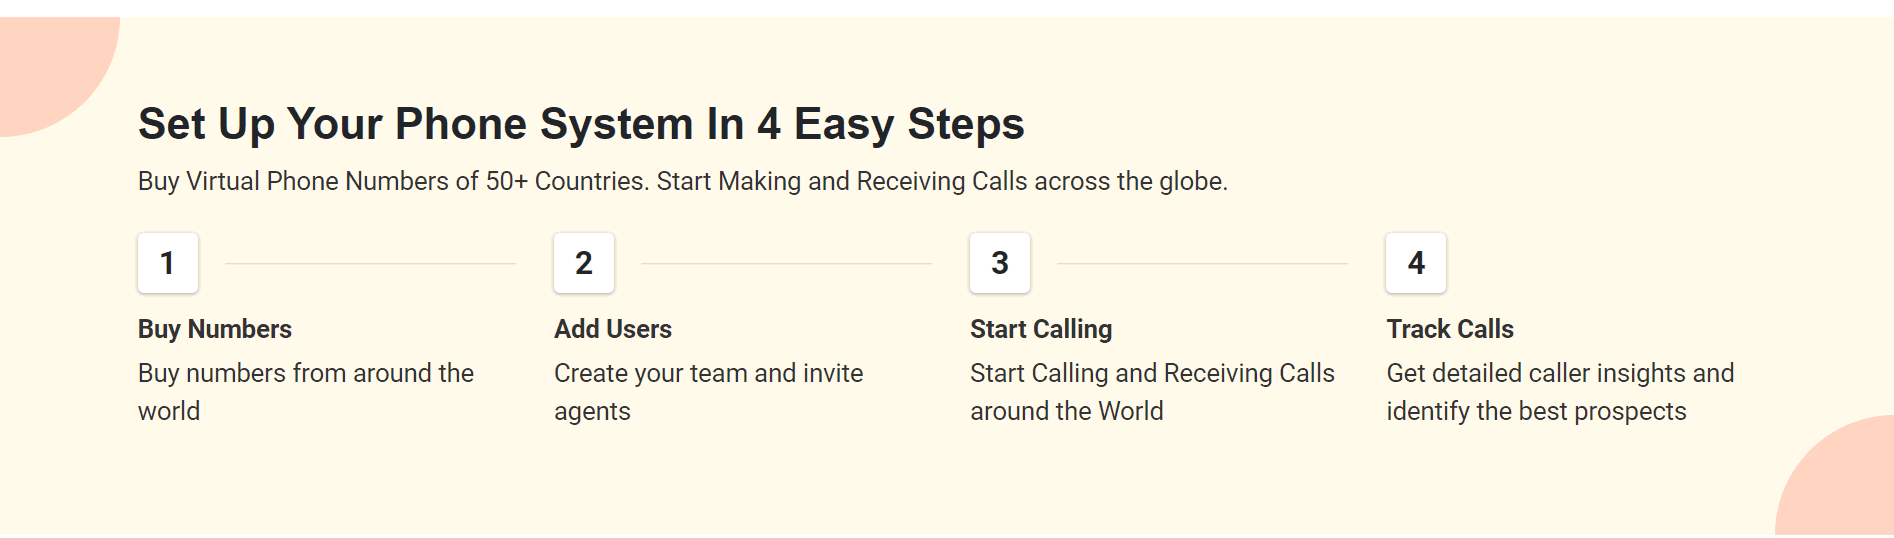 Best-Virtual-Phone-System-For-Business-In